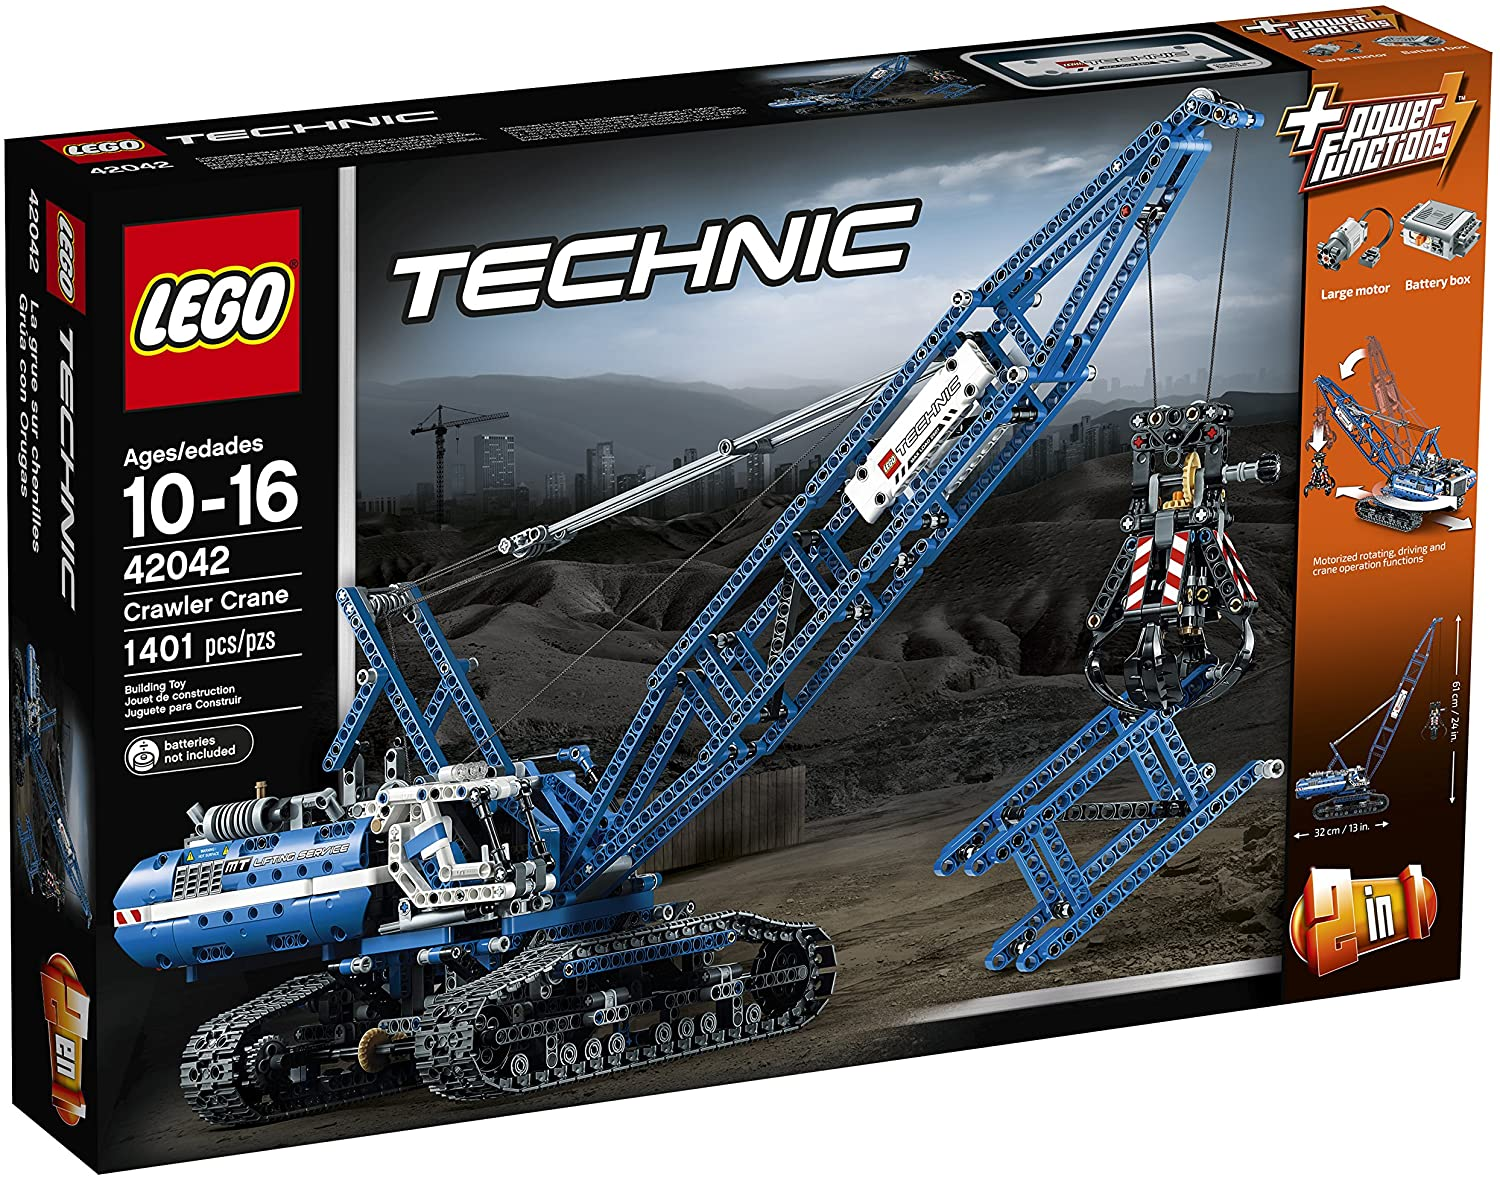 Top 7 Best LEGO Crane Sets Reviews in 2020 7